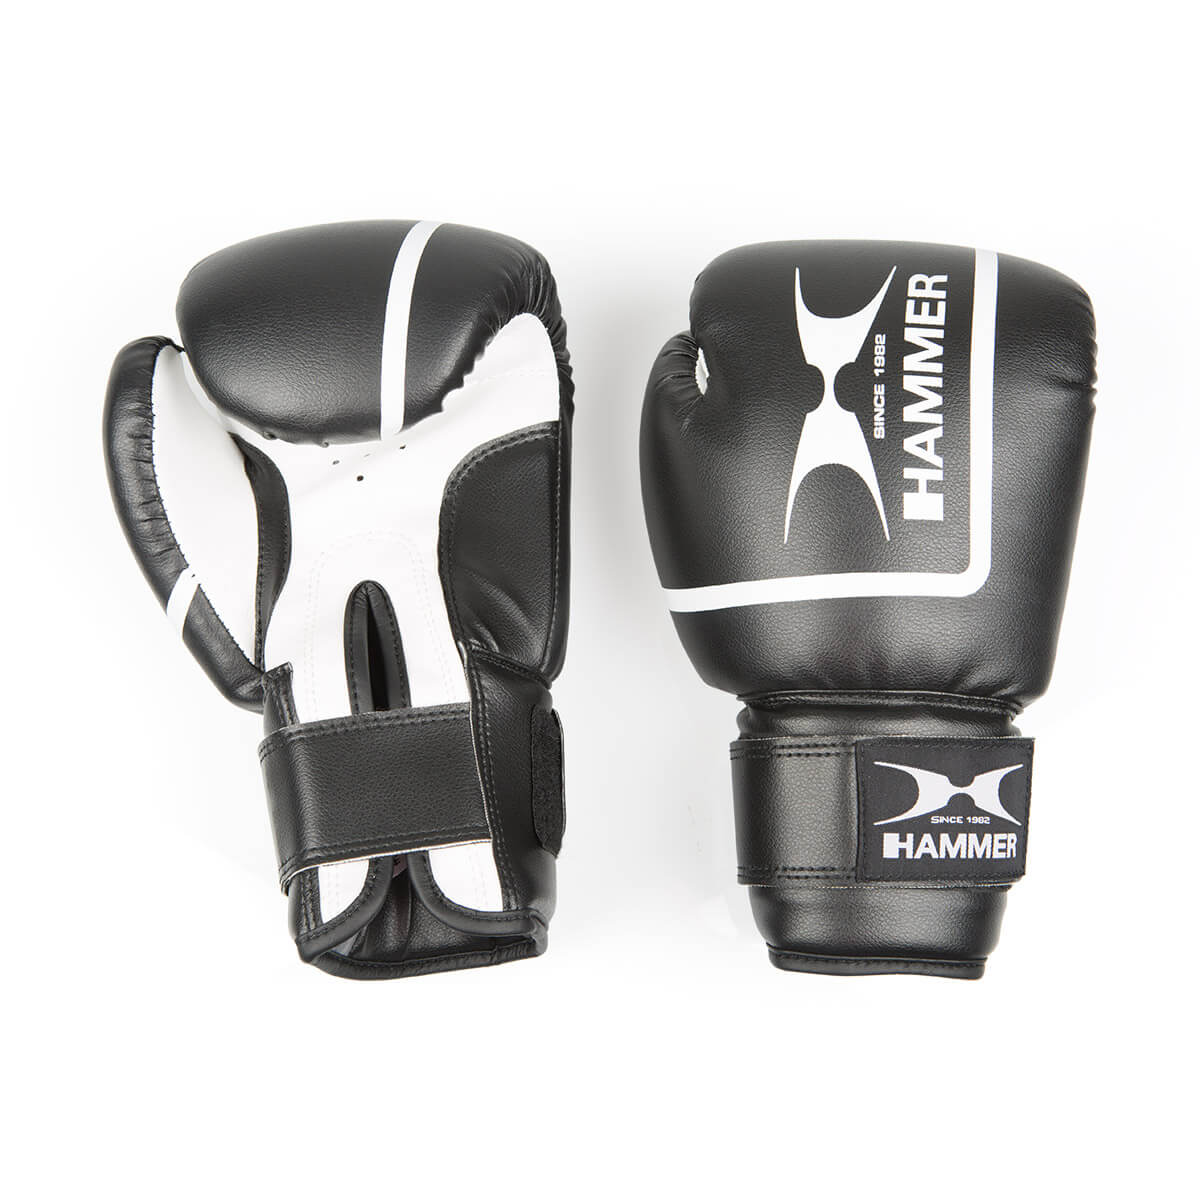 Image of HAMMER BOXING Boxhandschuhe Fit 2 - 14oz